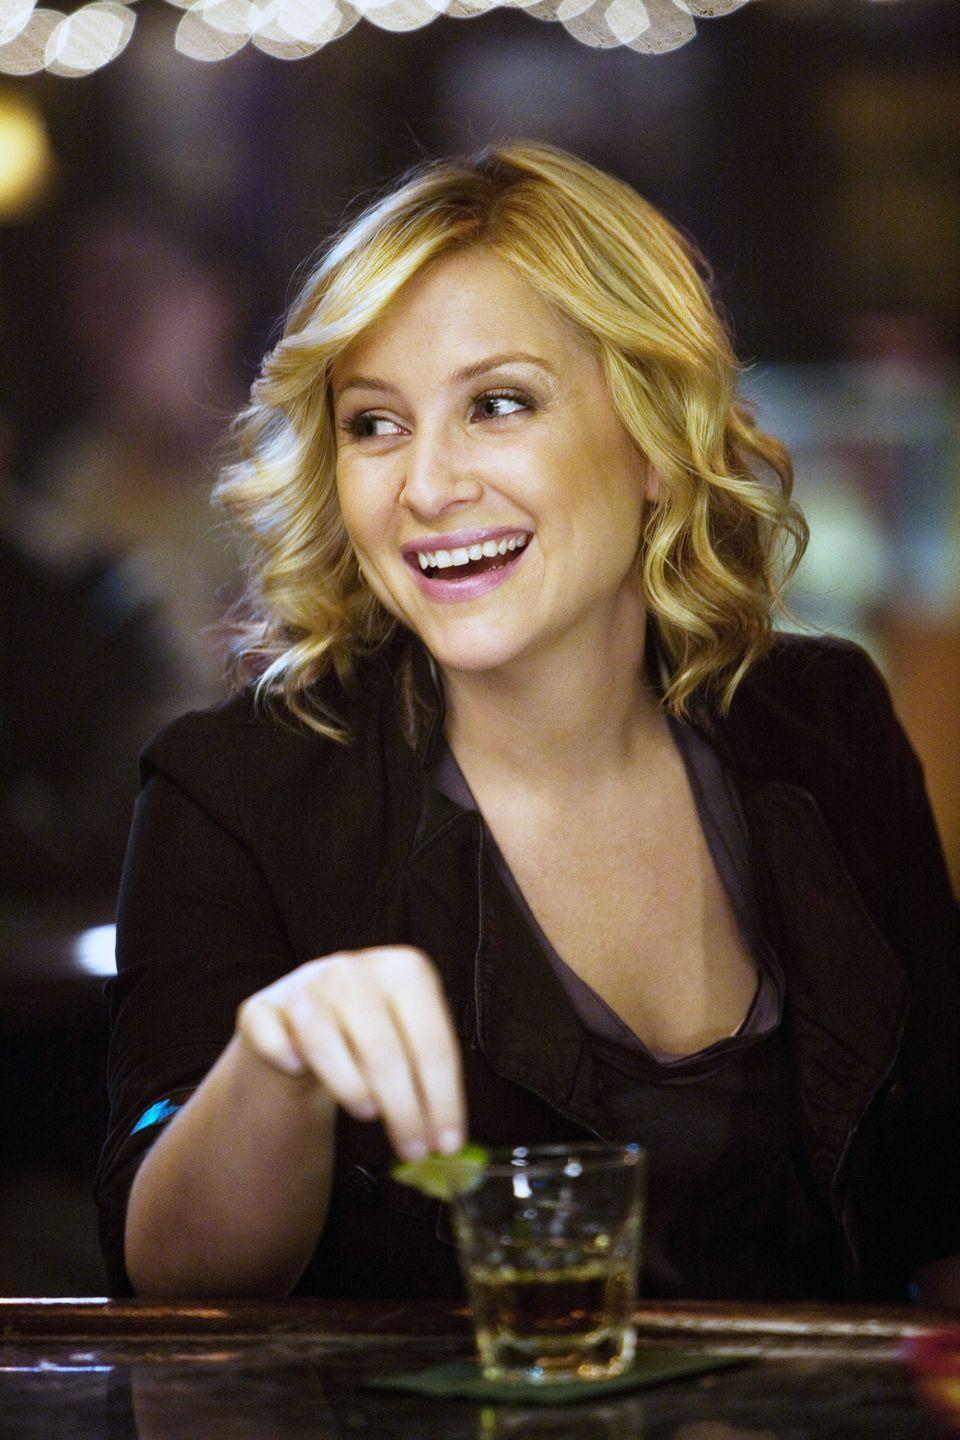 <p>Jessica Capshaw joined the cast of <em>Grey's </em>in season 5 as pediatric surgeon Arizona Robbins. </p>